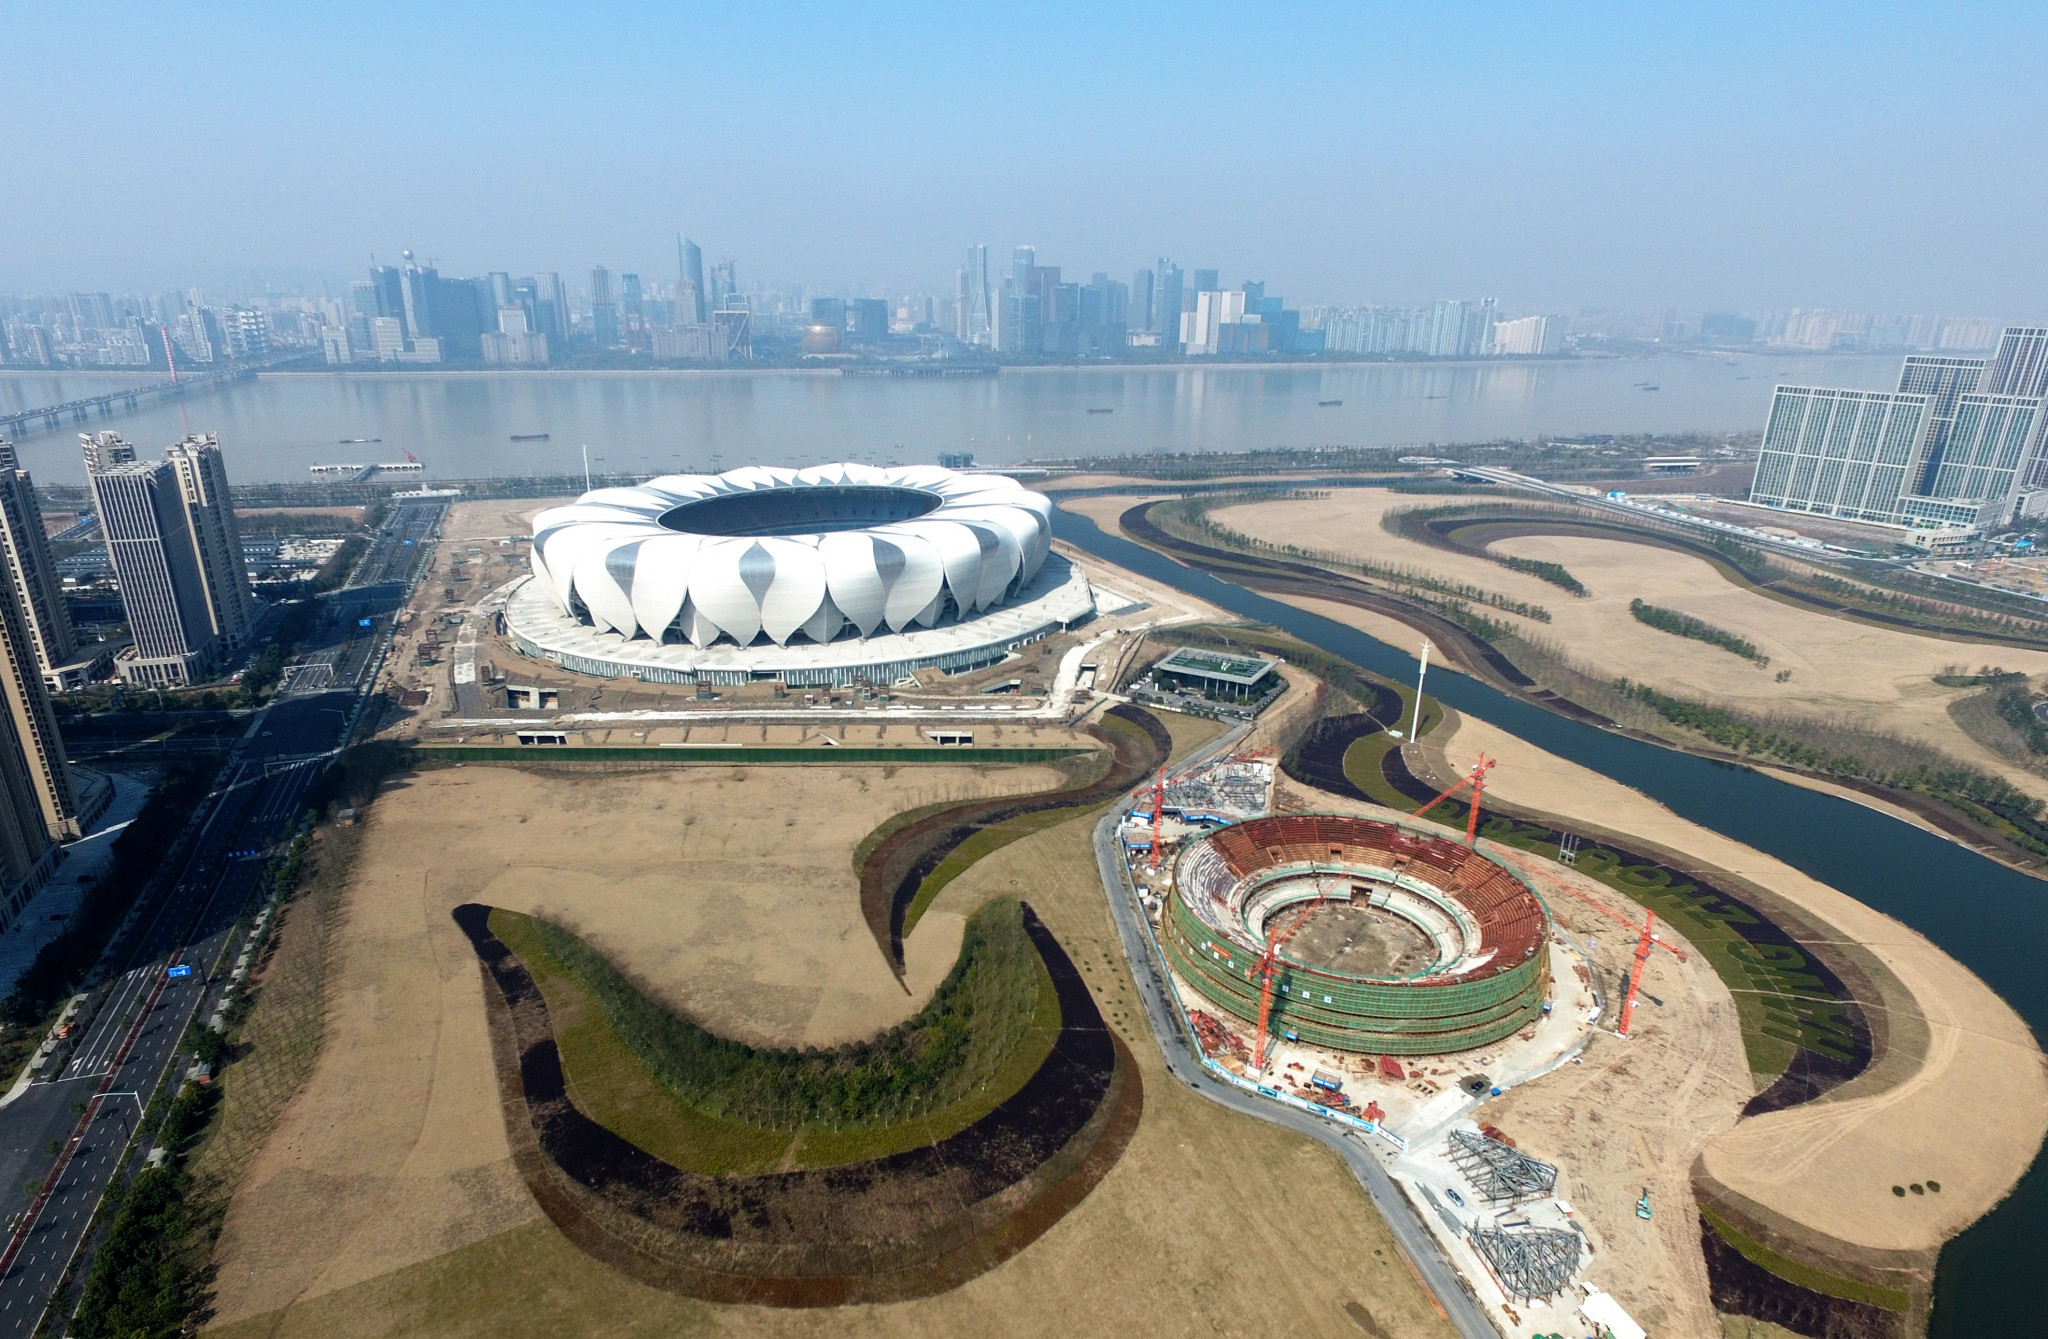 Hangzhou 2022 vows make venues available for public use after Asian Games